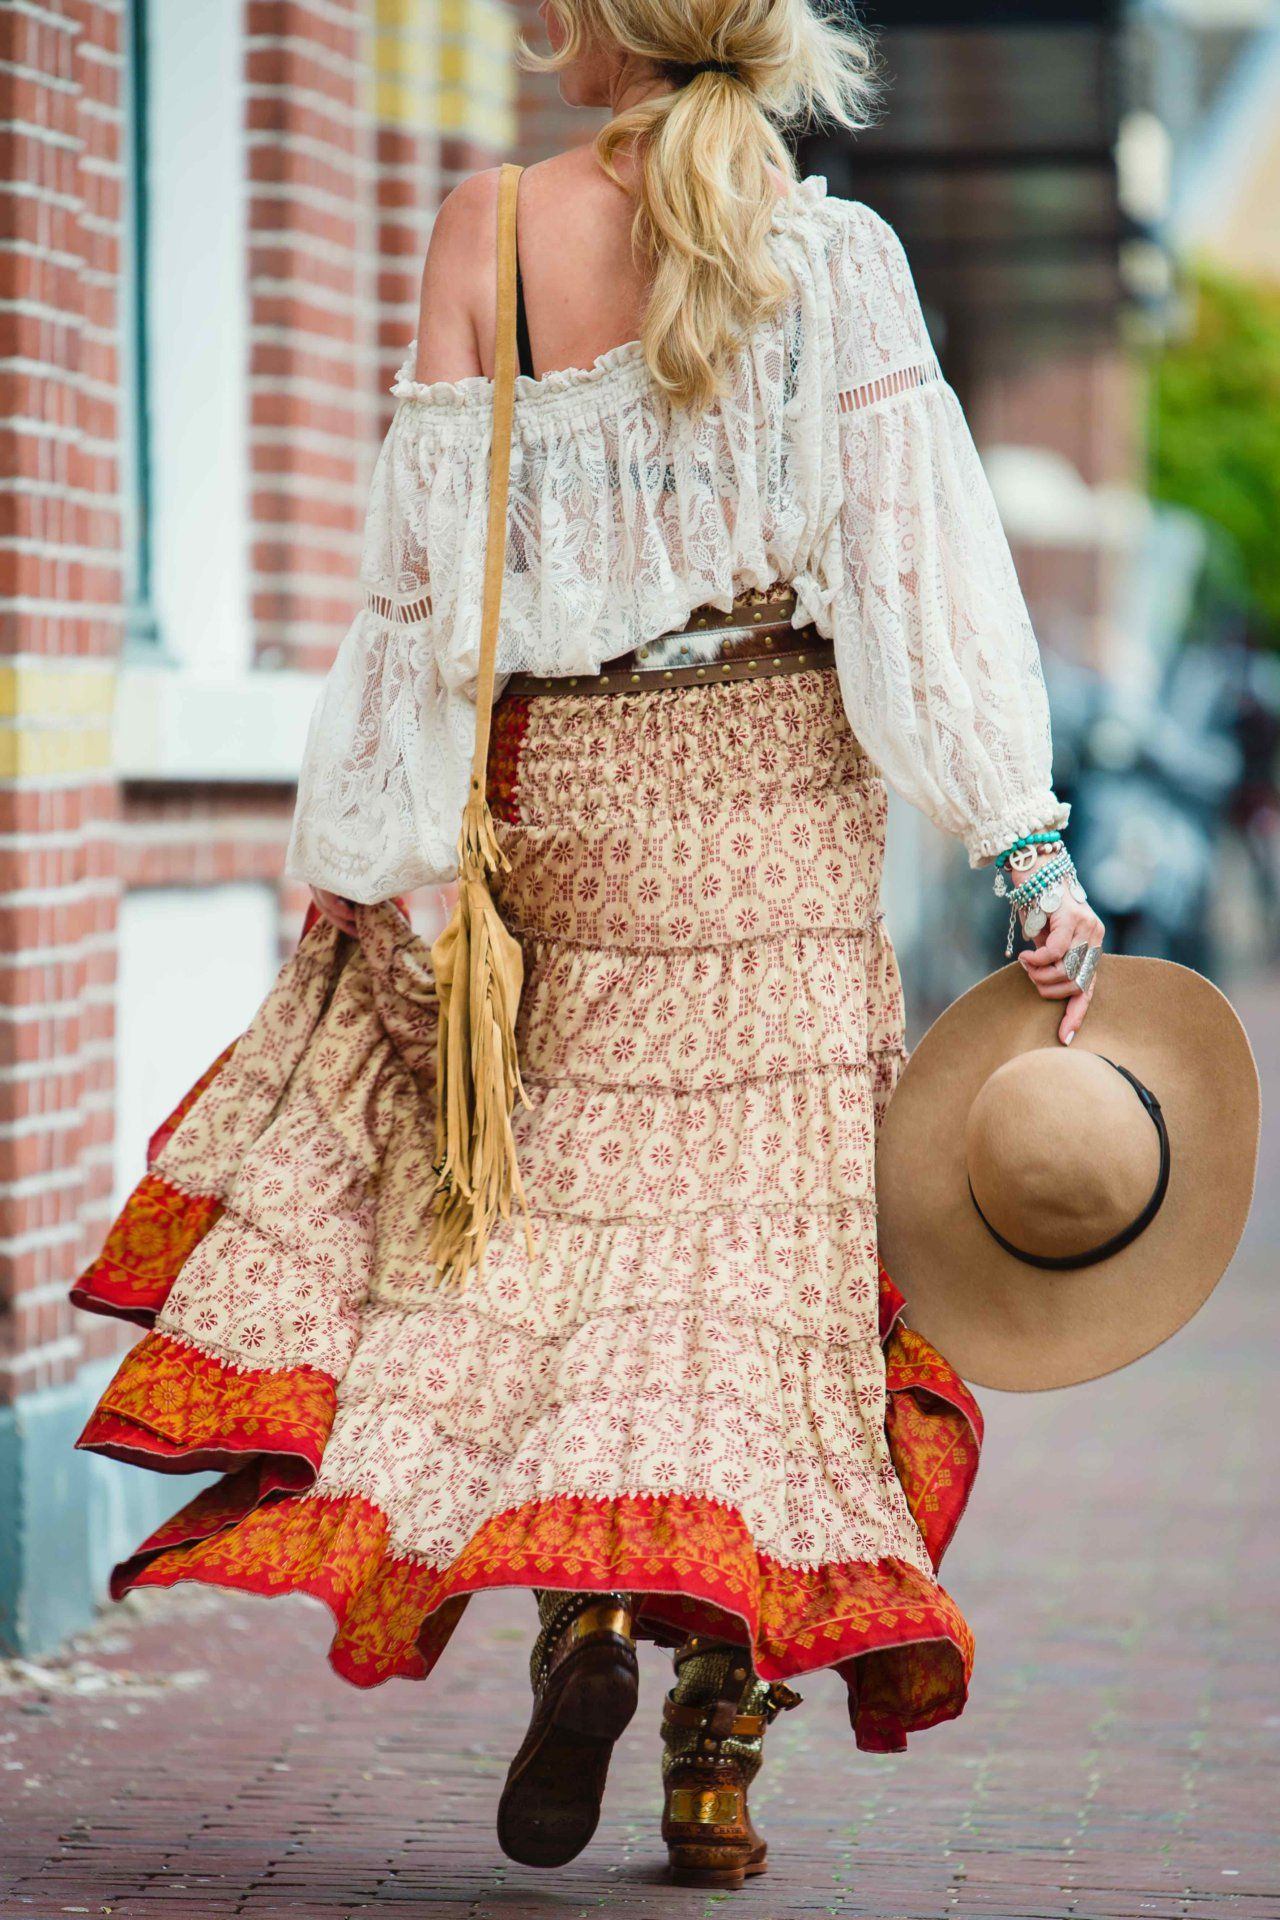 Buy Chic bohemian must-have items pictures trends